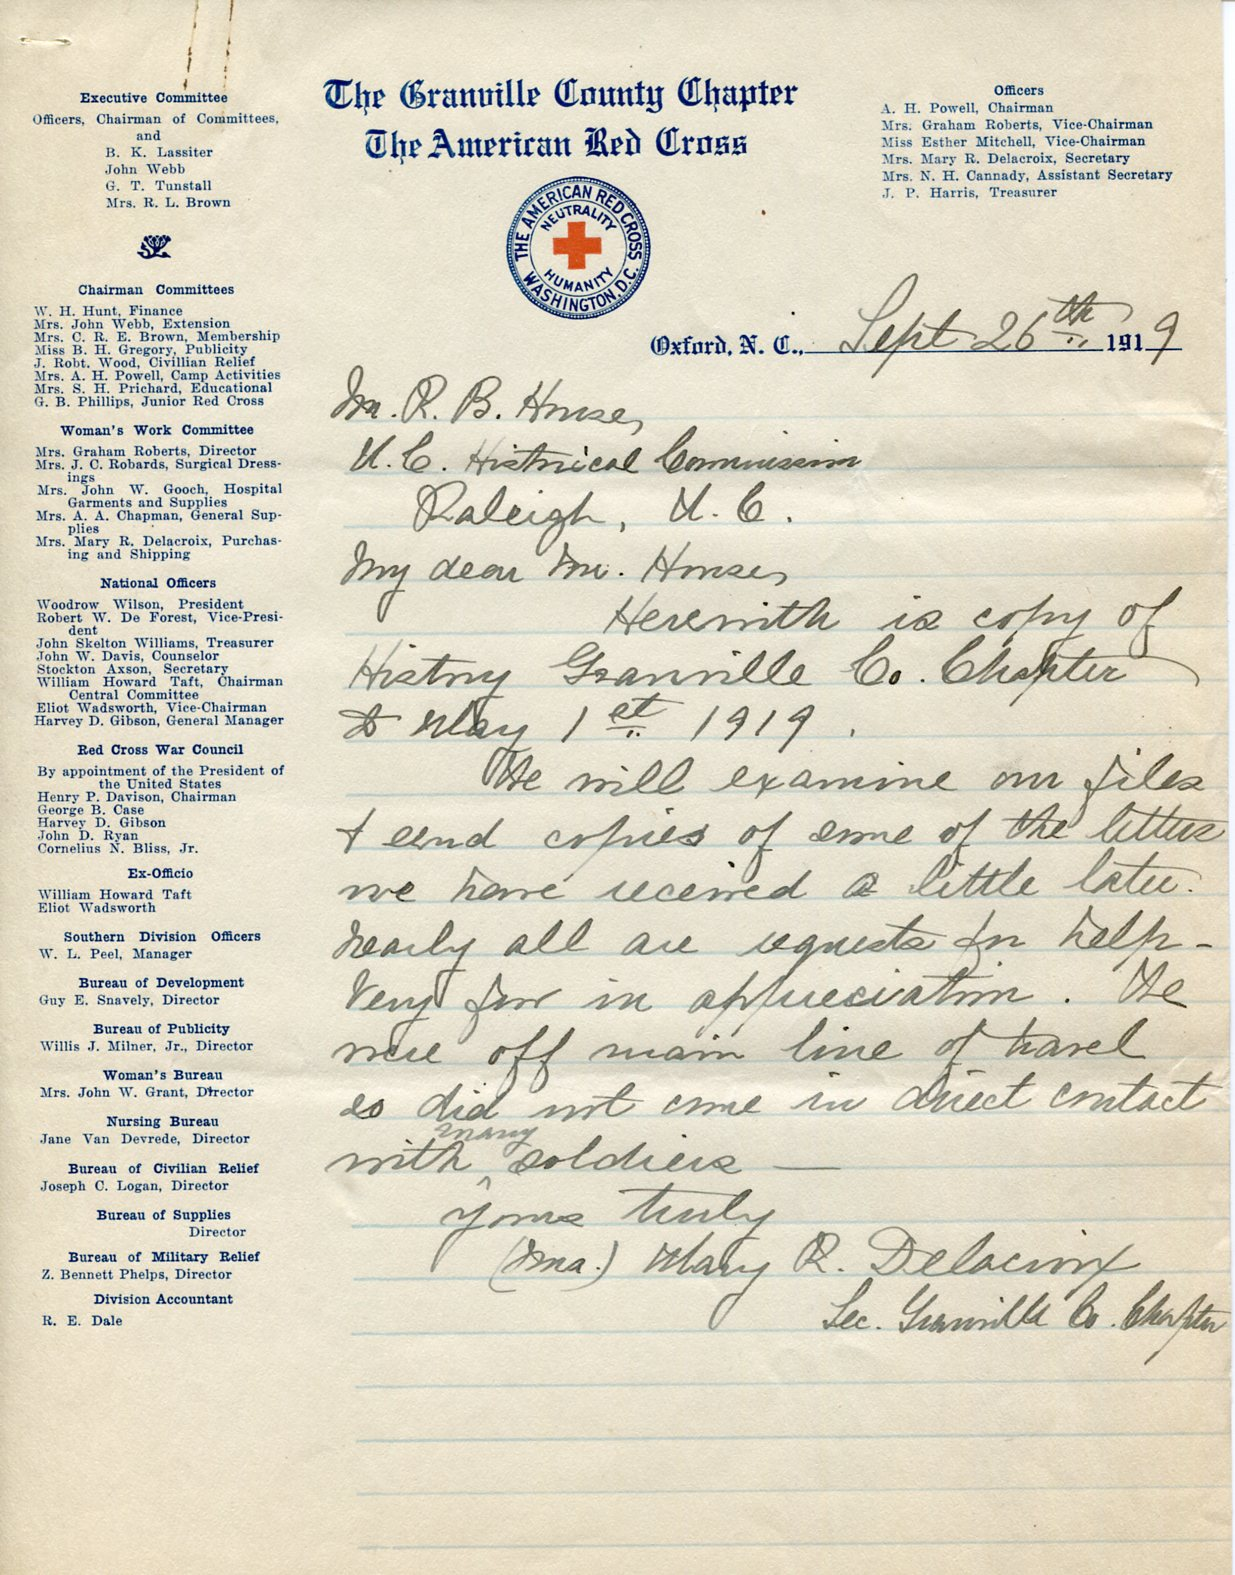 History of the North Carolina Red Cross WWI Chapter